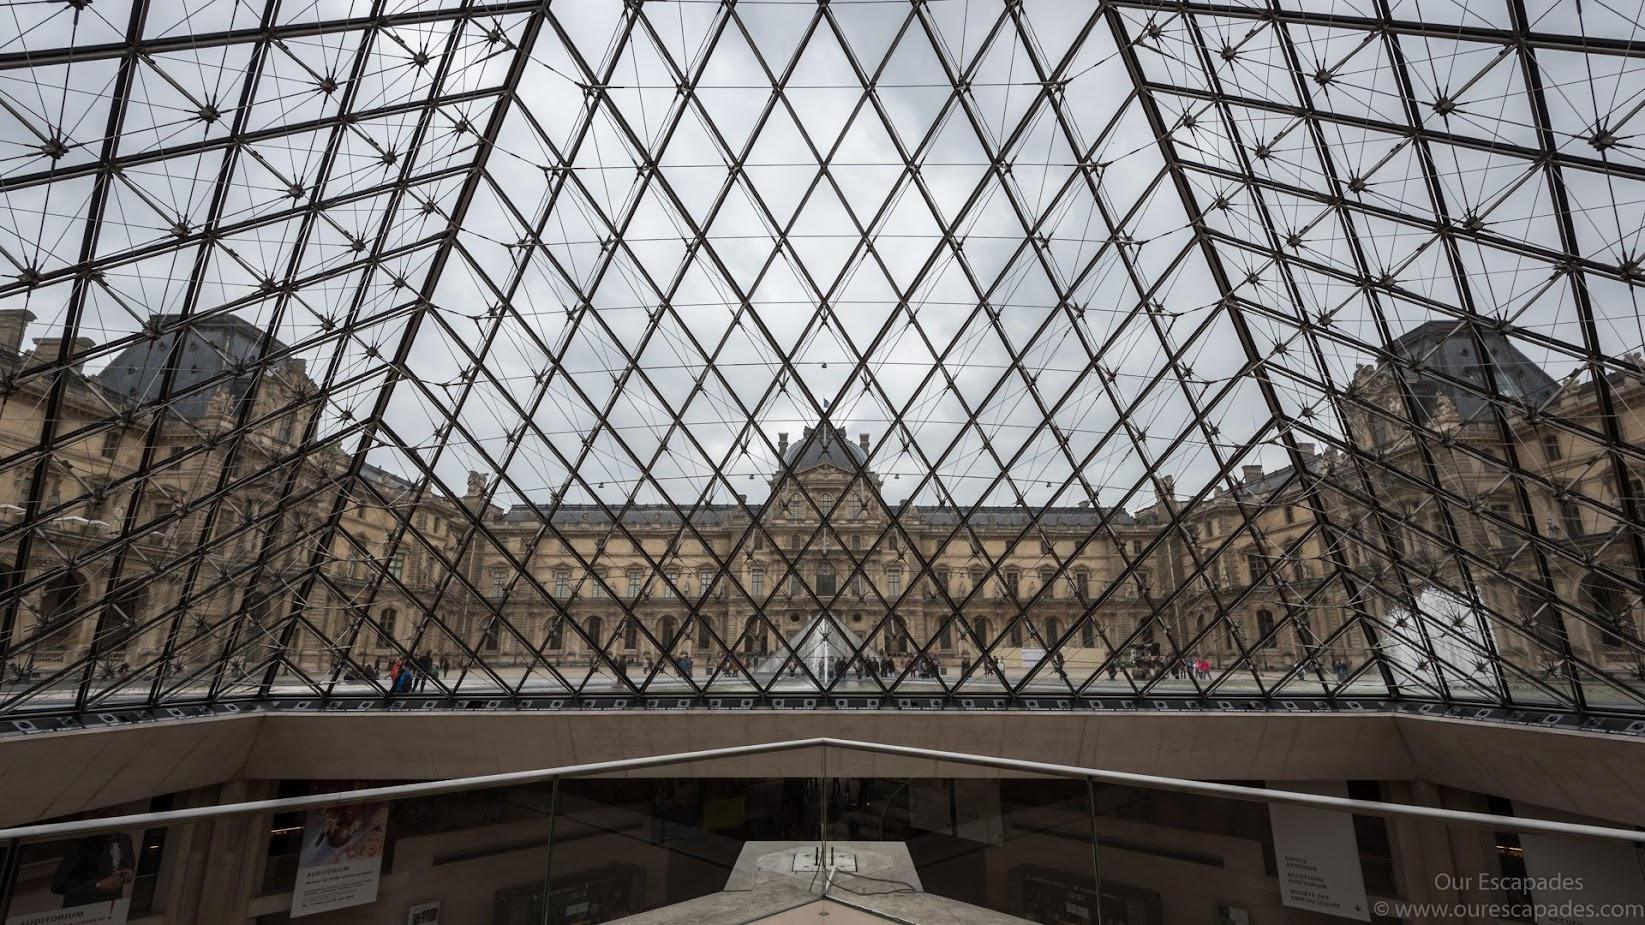 Inside the Louvre glass pyramid